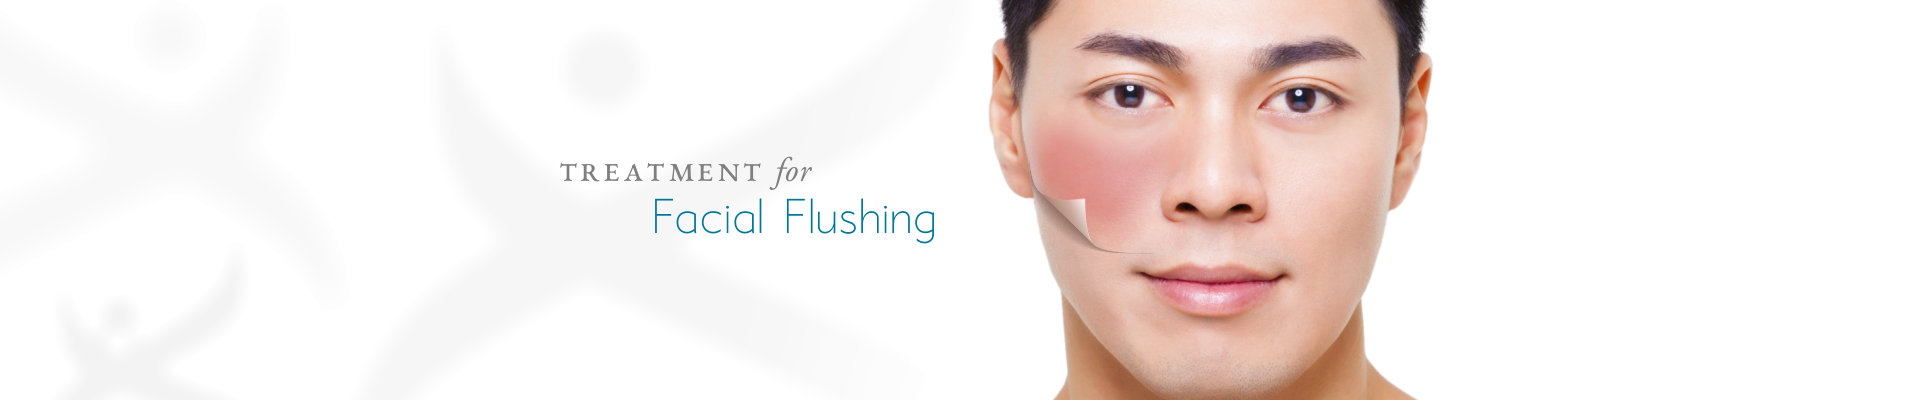 Remedies for facial flushing